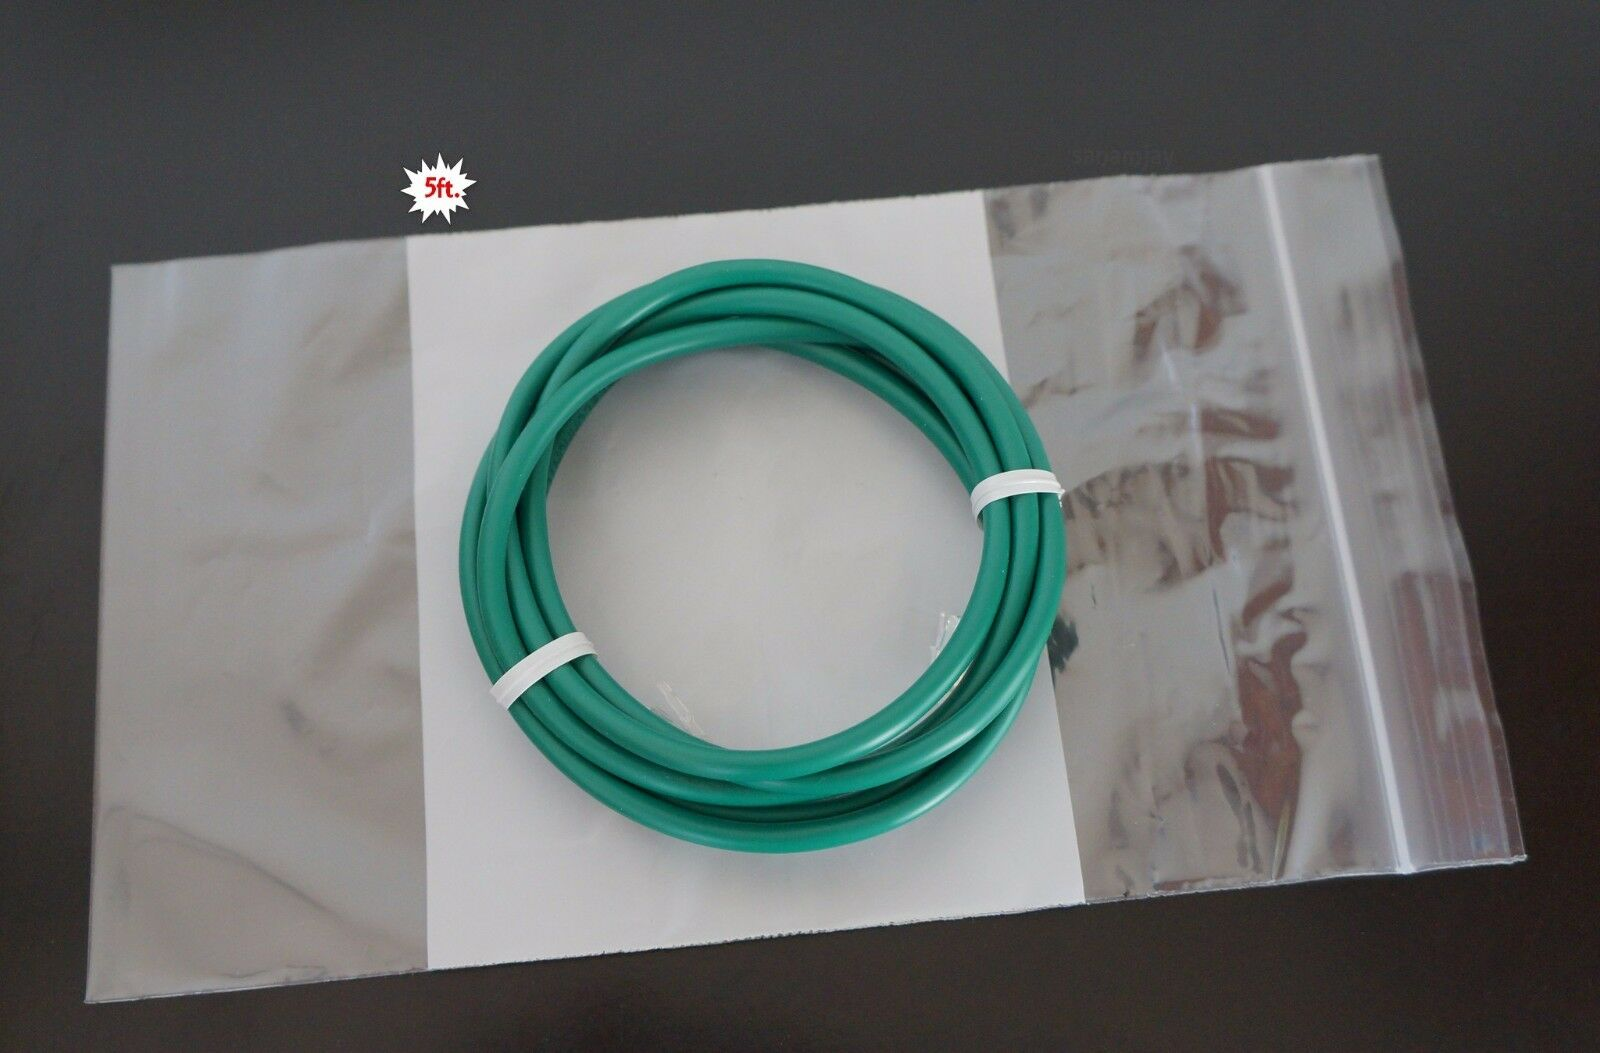 14 FT CAT5E WHITE RJ11 6P4C Data Cable Part NO QTY 2 TWO ASB1320-14W